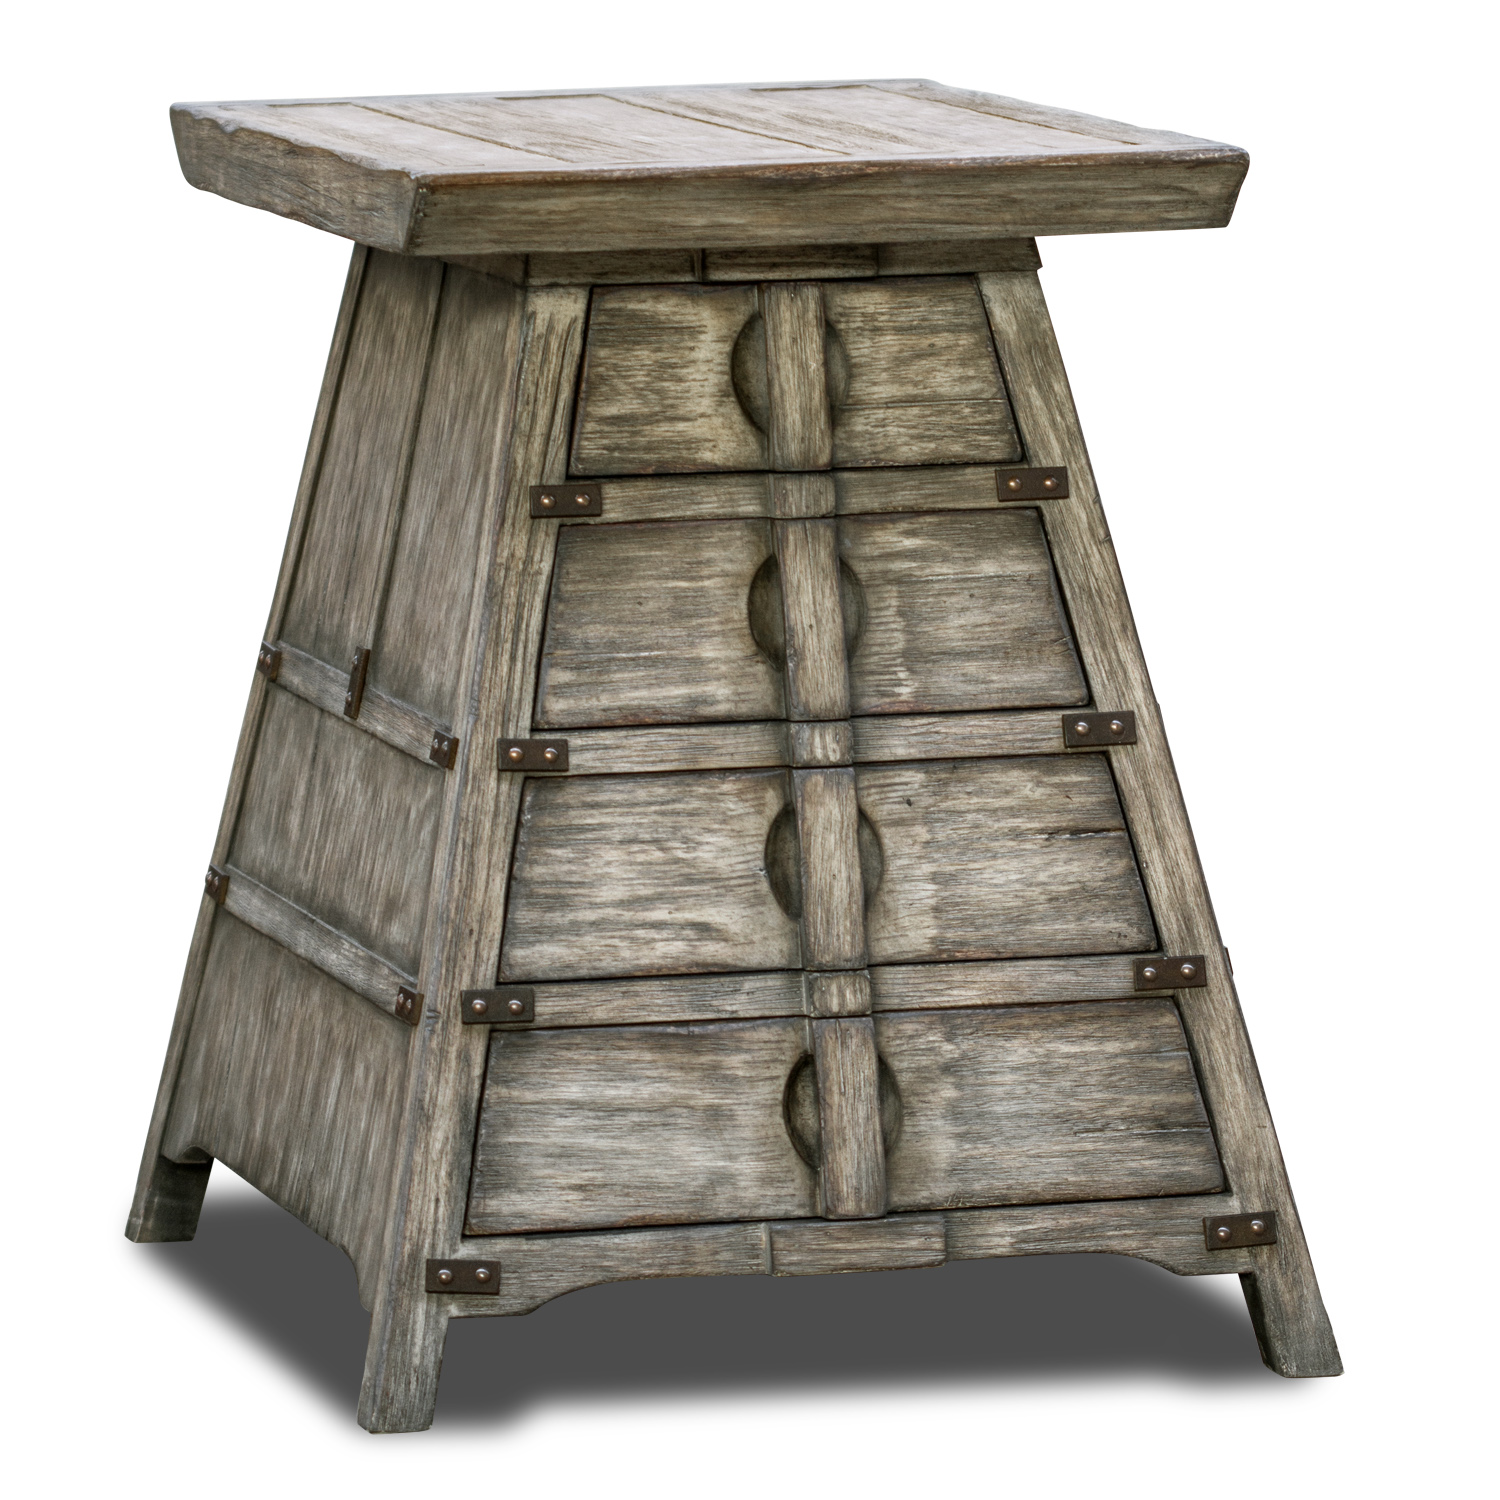 carpenter table driftwood matthew williams accent our catalog categories tables indoor barn doors small drop leaf with chairs tulip side marble cool desk lamps inch round